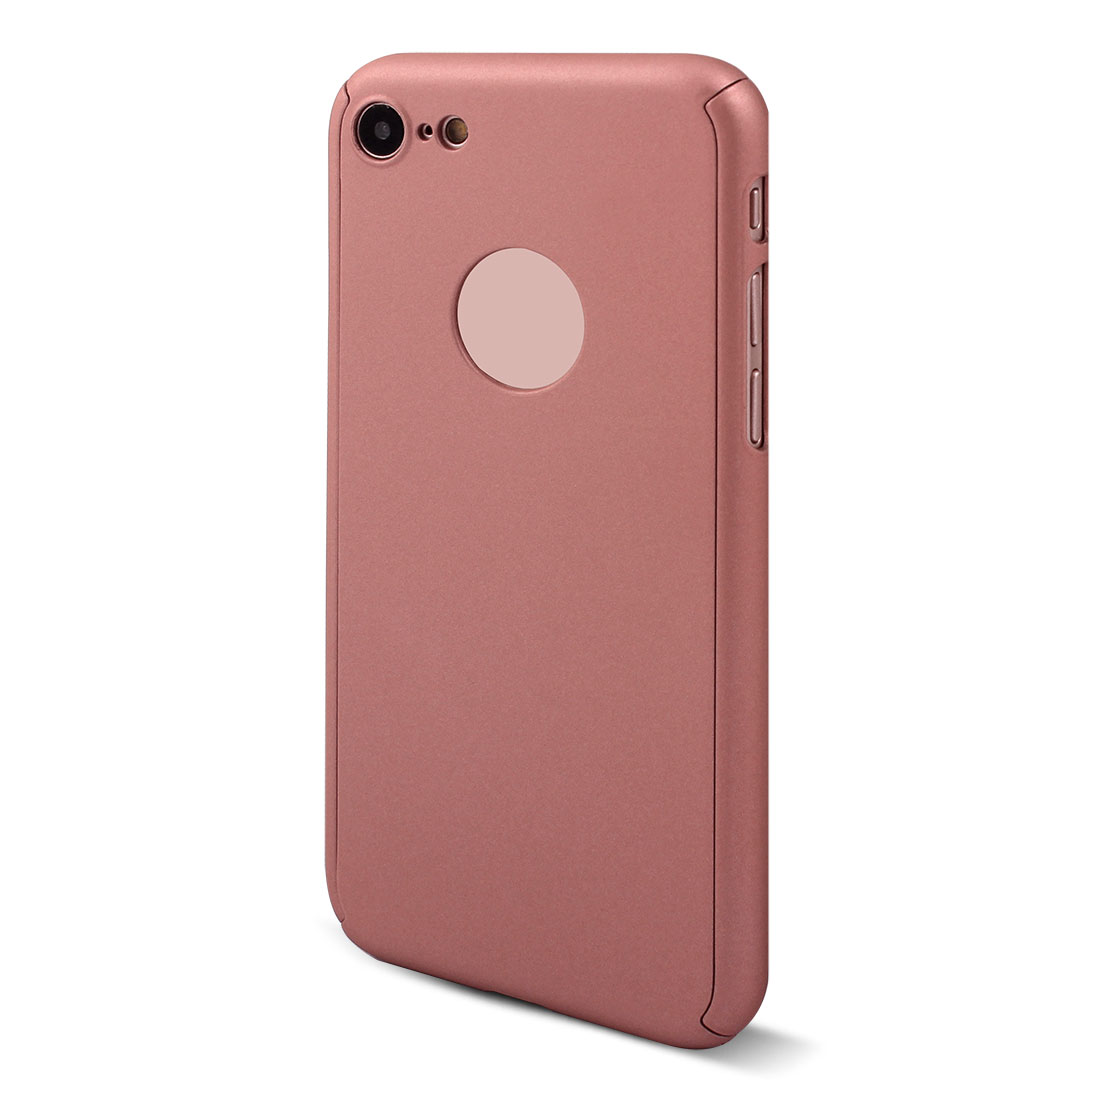 Polycarbonate 360 Degree Full Body Phone Case Rose Gold Tone for iPhone 7